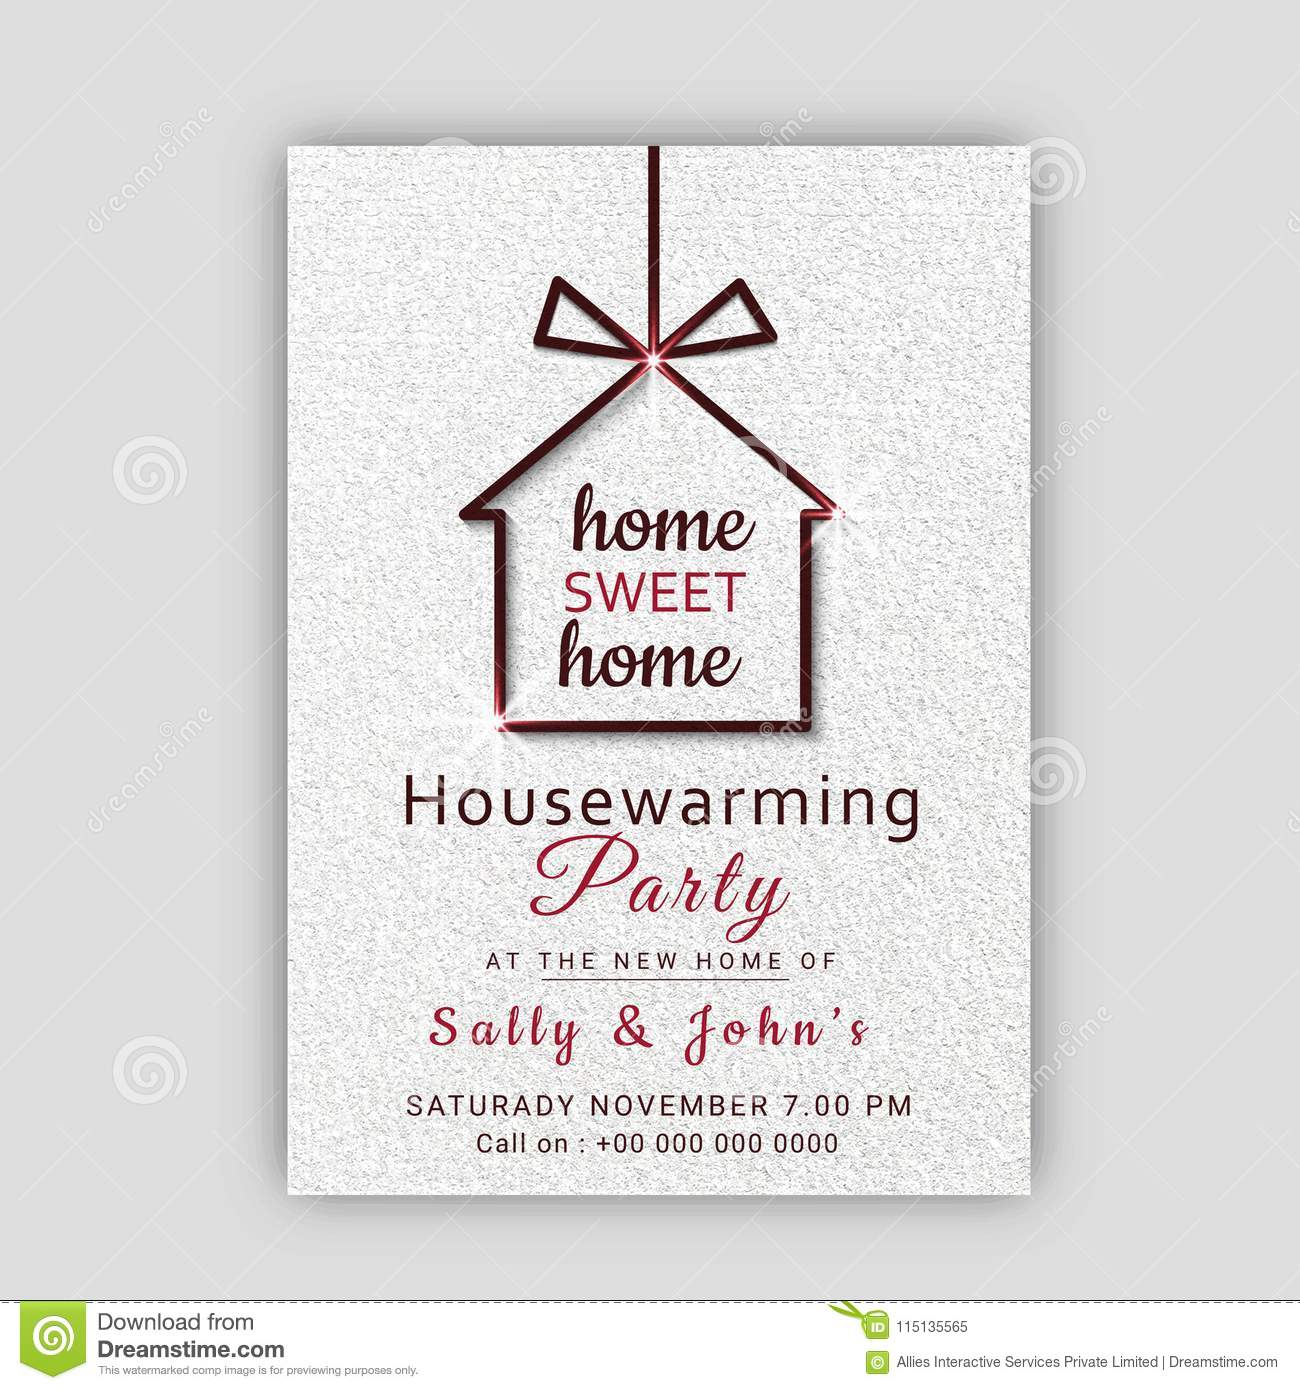 Housewarming Party Card Template